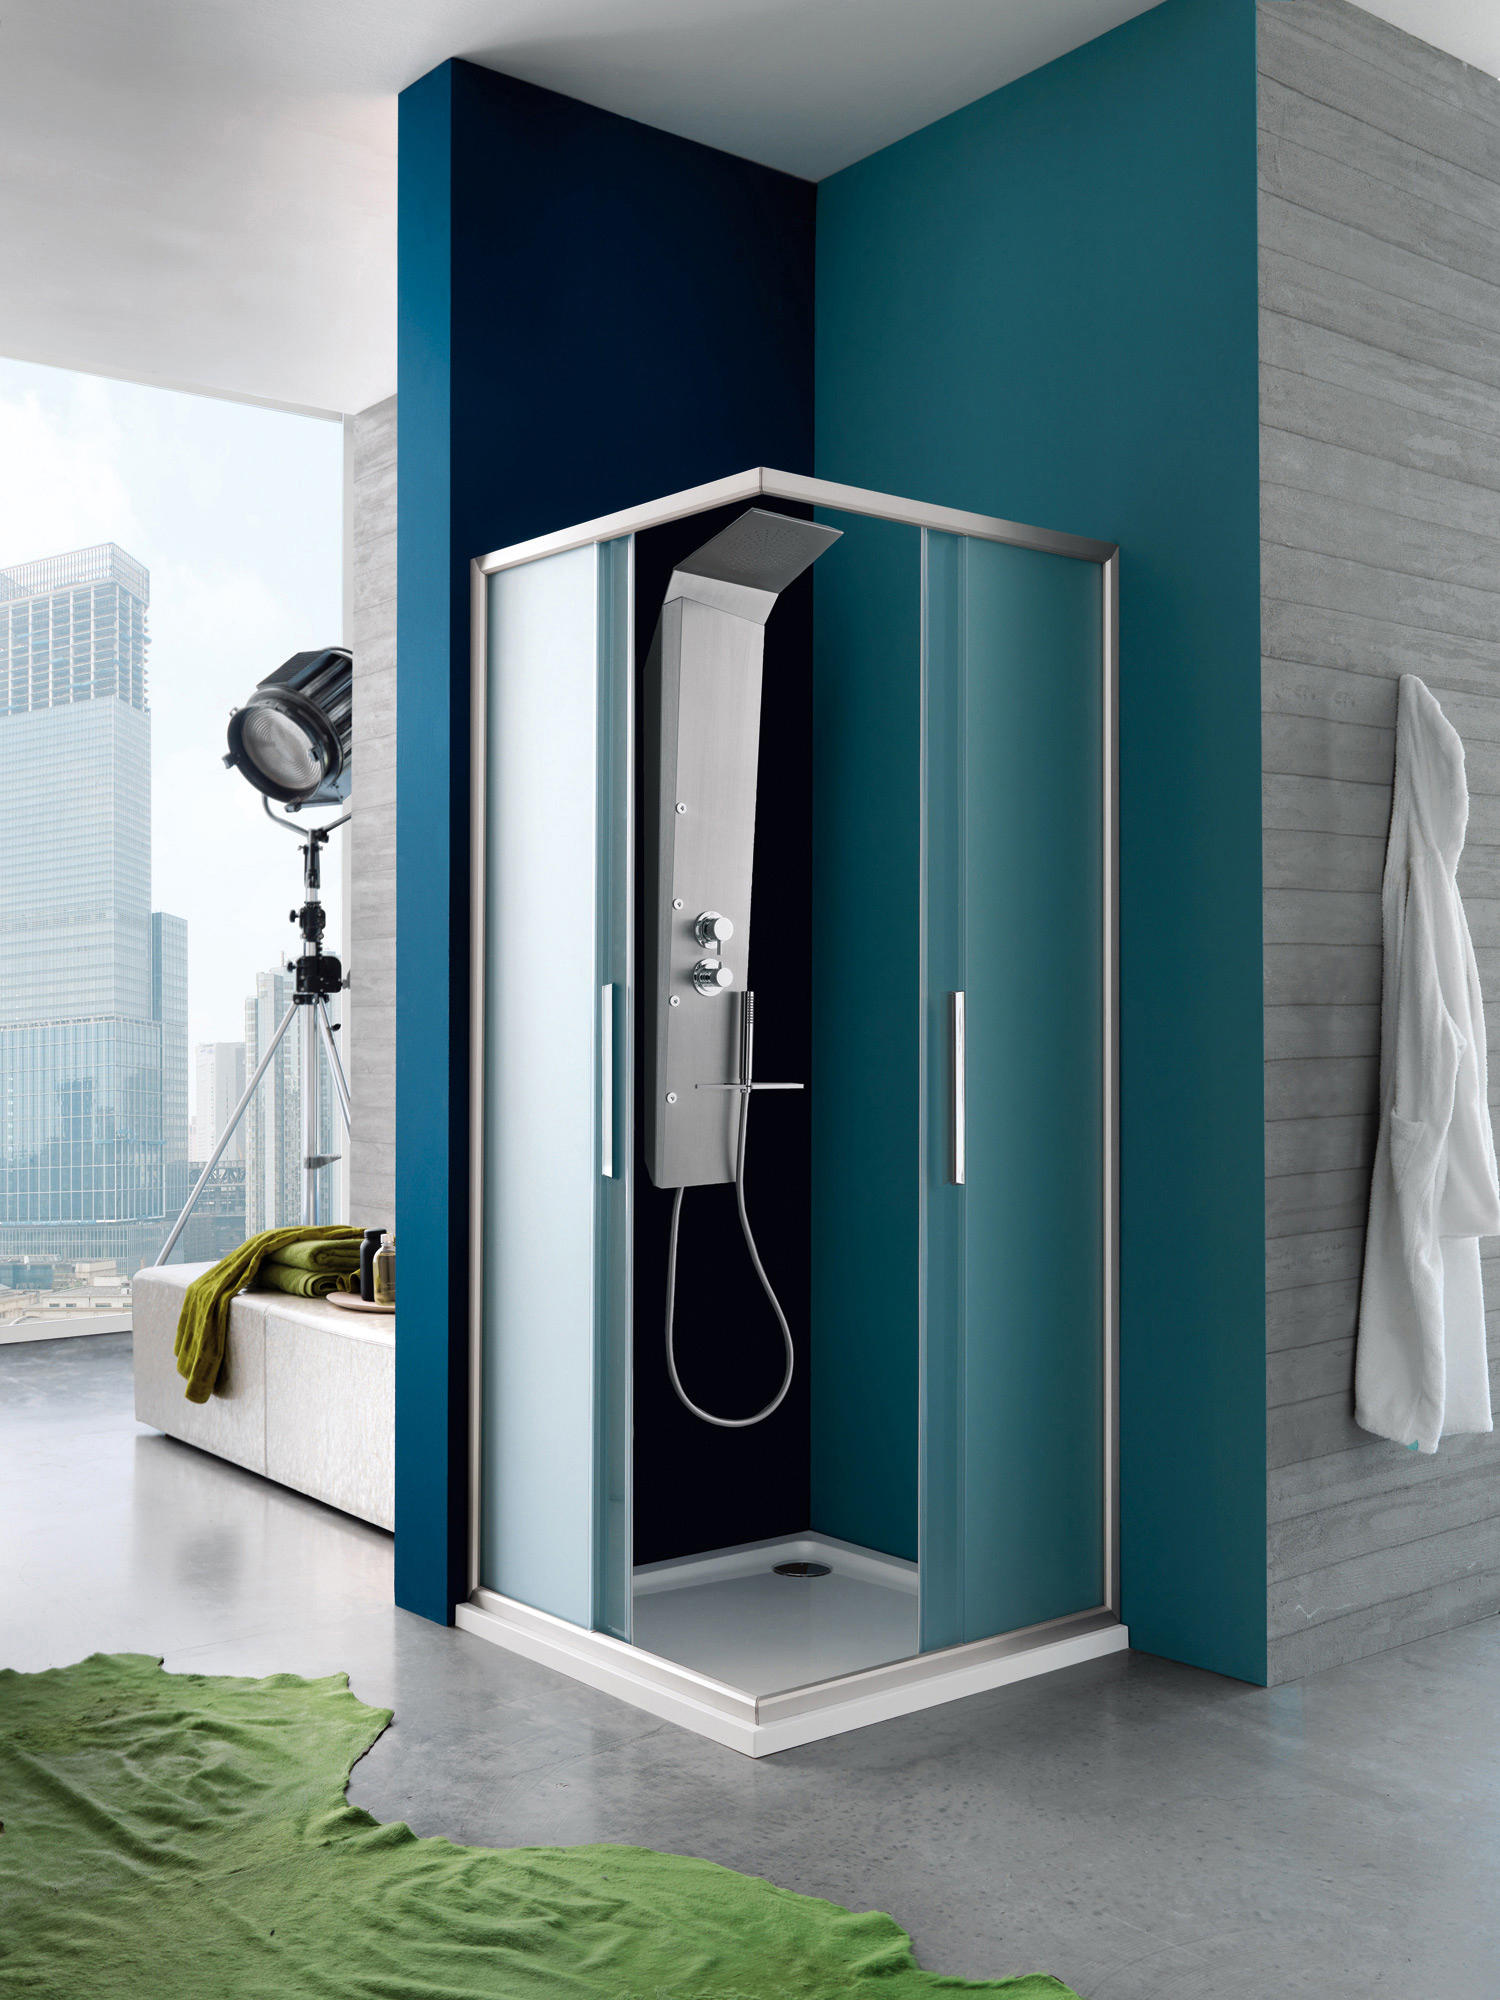 PIXEL - Shower cabins / stalls from SAMO | Architonic